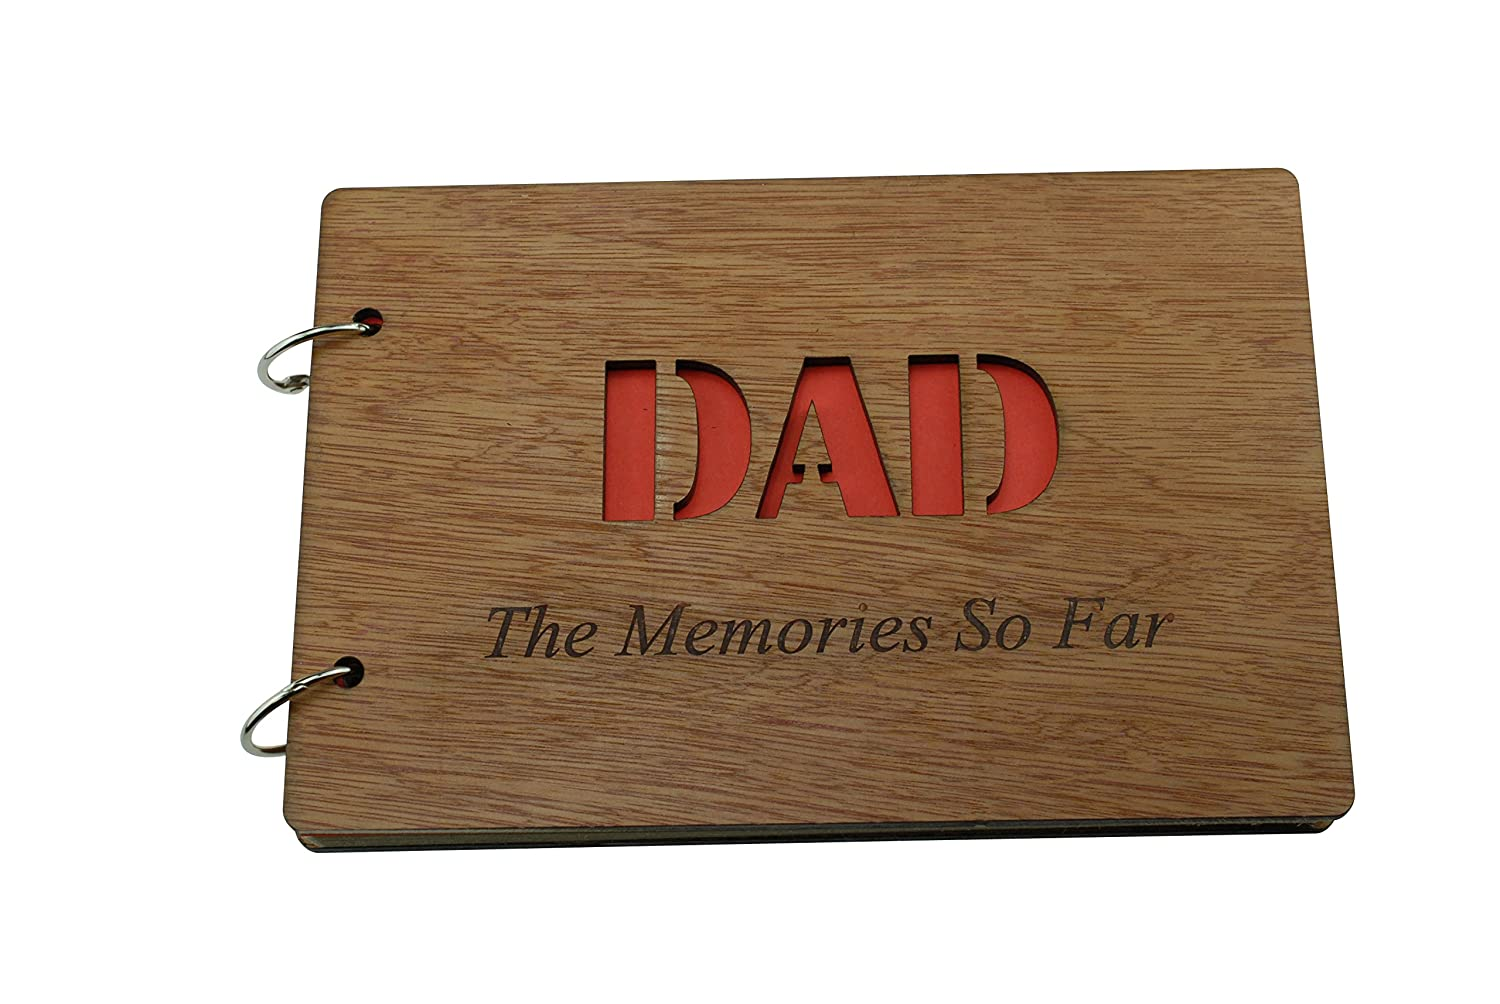 DAD The Memories So Far - Scrapbook, Photo album or Notebook Idea For DAD, Fathersday or Birthday Gifts Pirantin